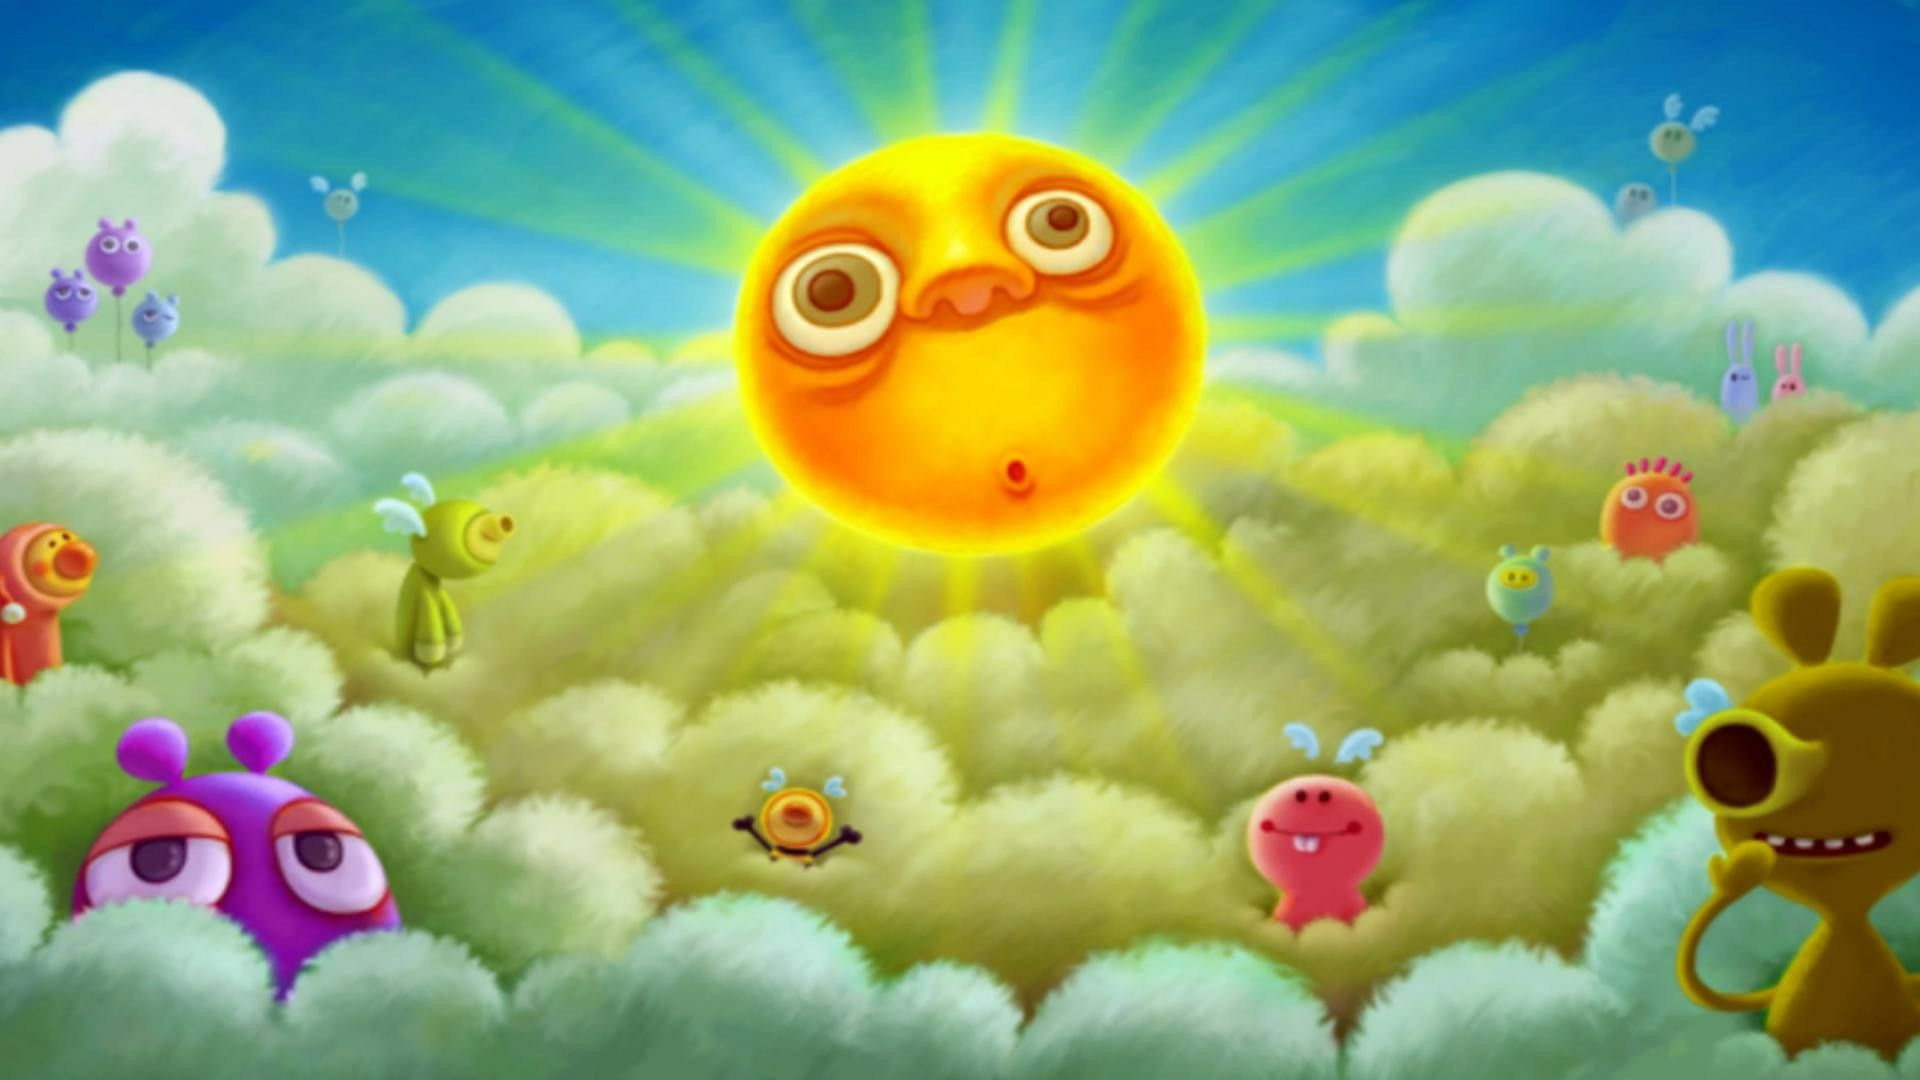 Funny Cartoon Wallpapers Top Free Funny Cartoon Backgrounds